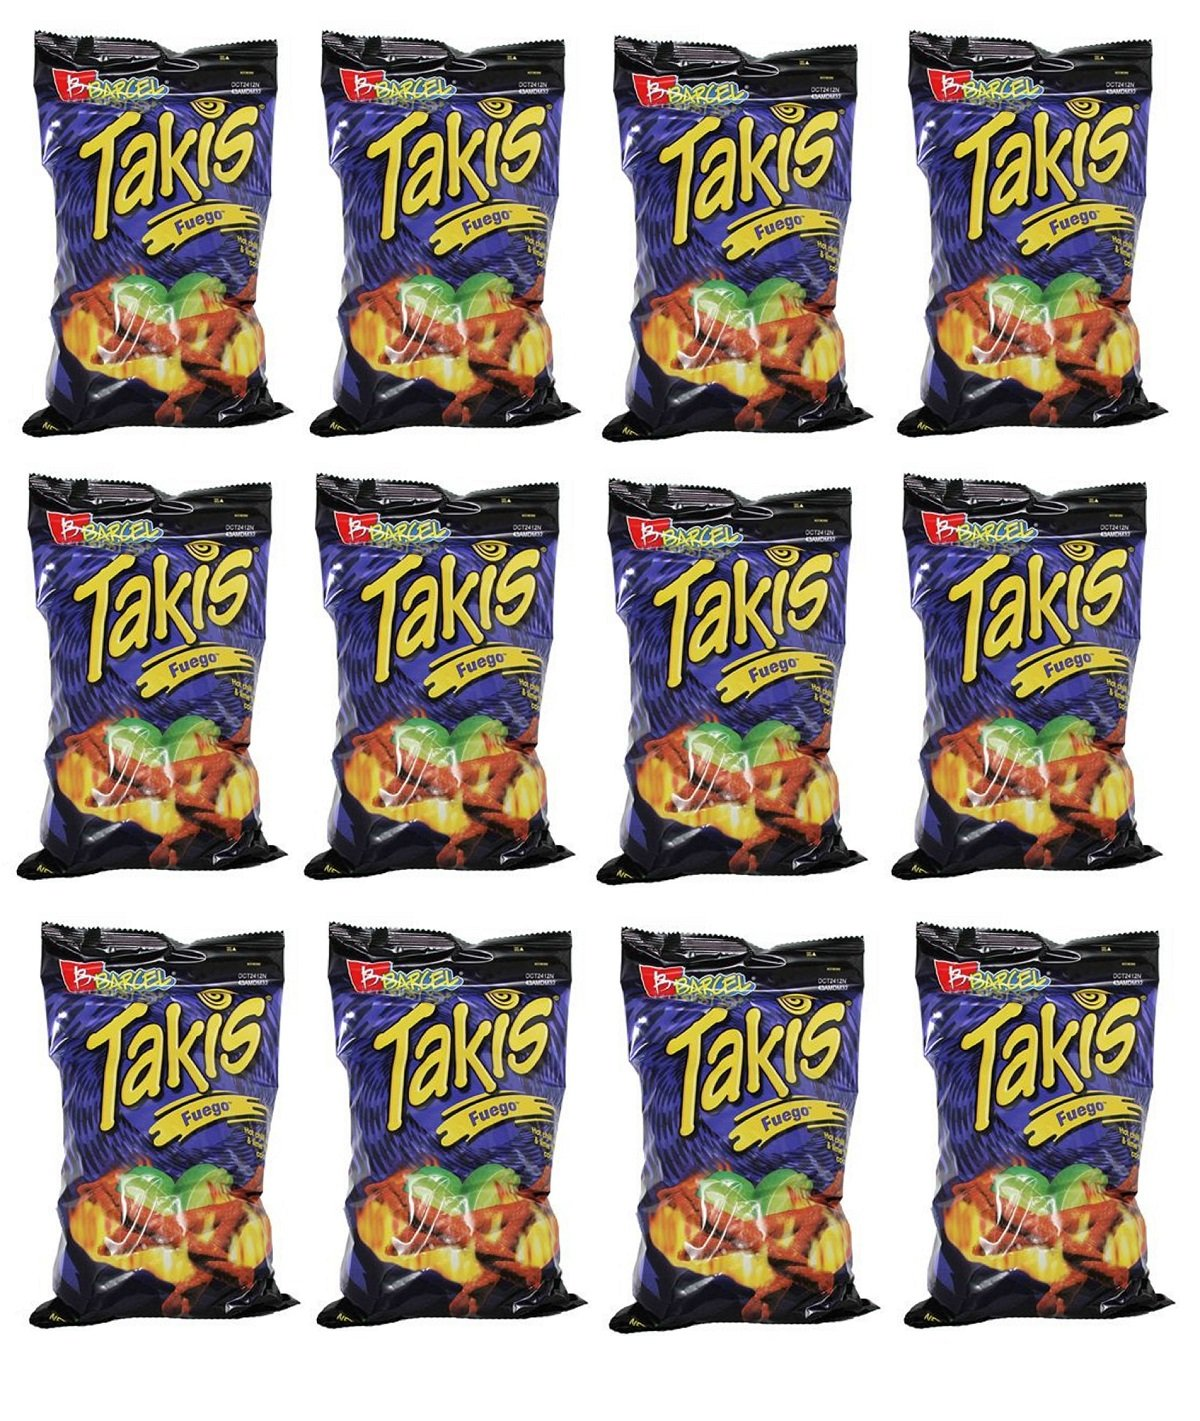 Barcel Takis Fuego Corn Snack - Hot Chili Pepper & Lime - 12 LARGE 9.9oz Bags